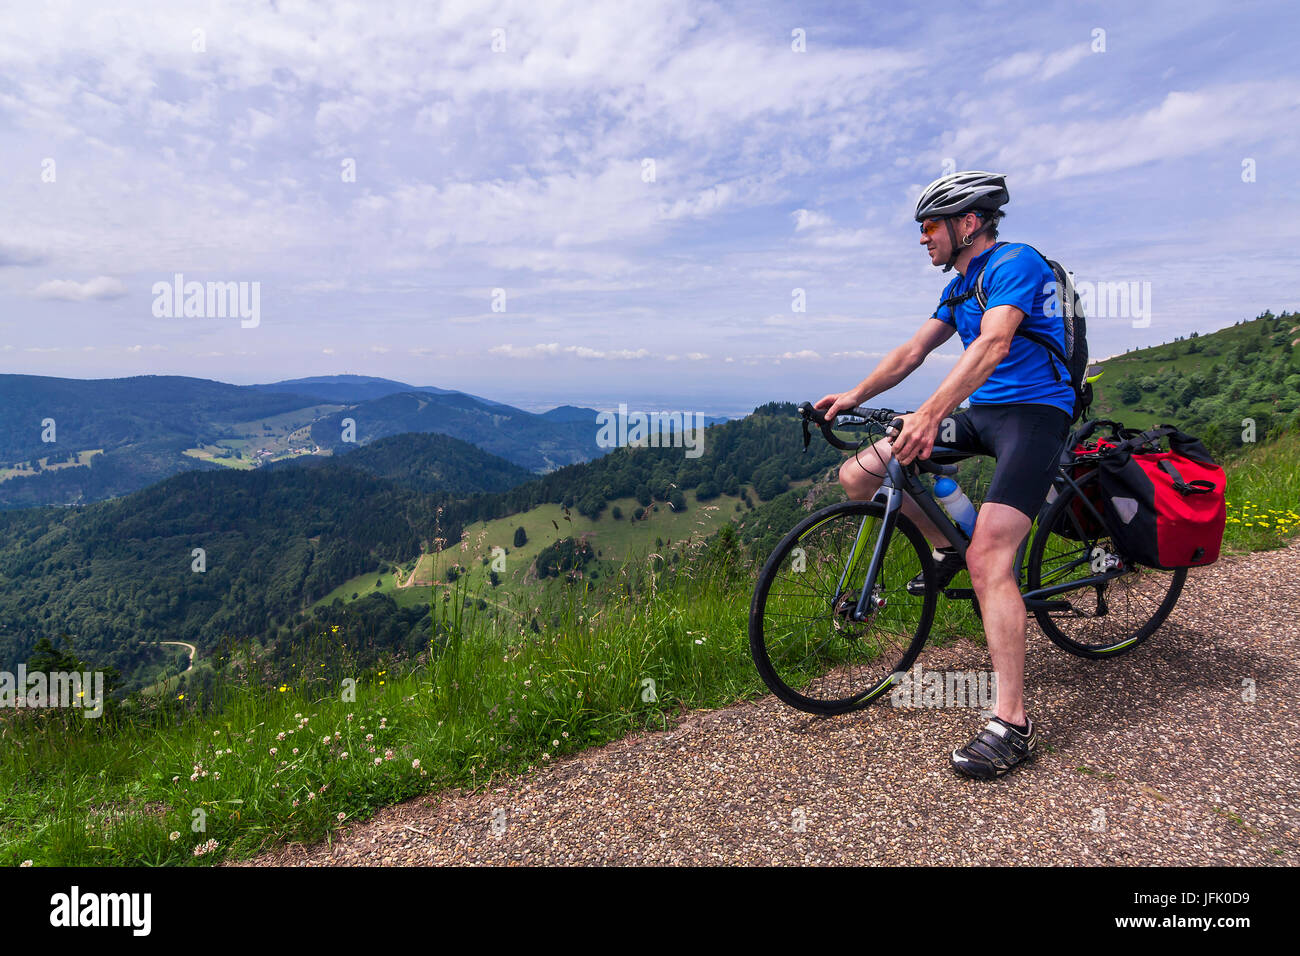 Man sitting on bicycle looking at mountains Stock Photo